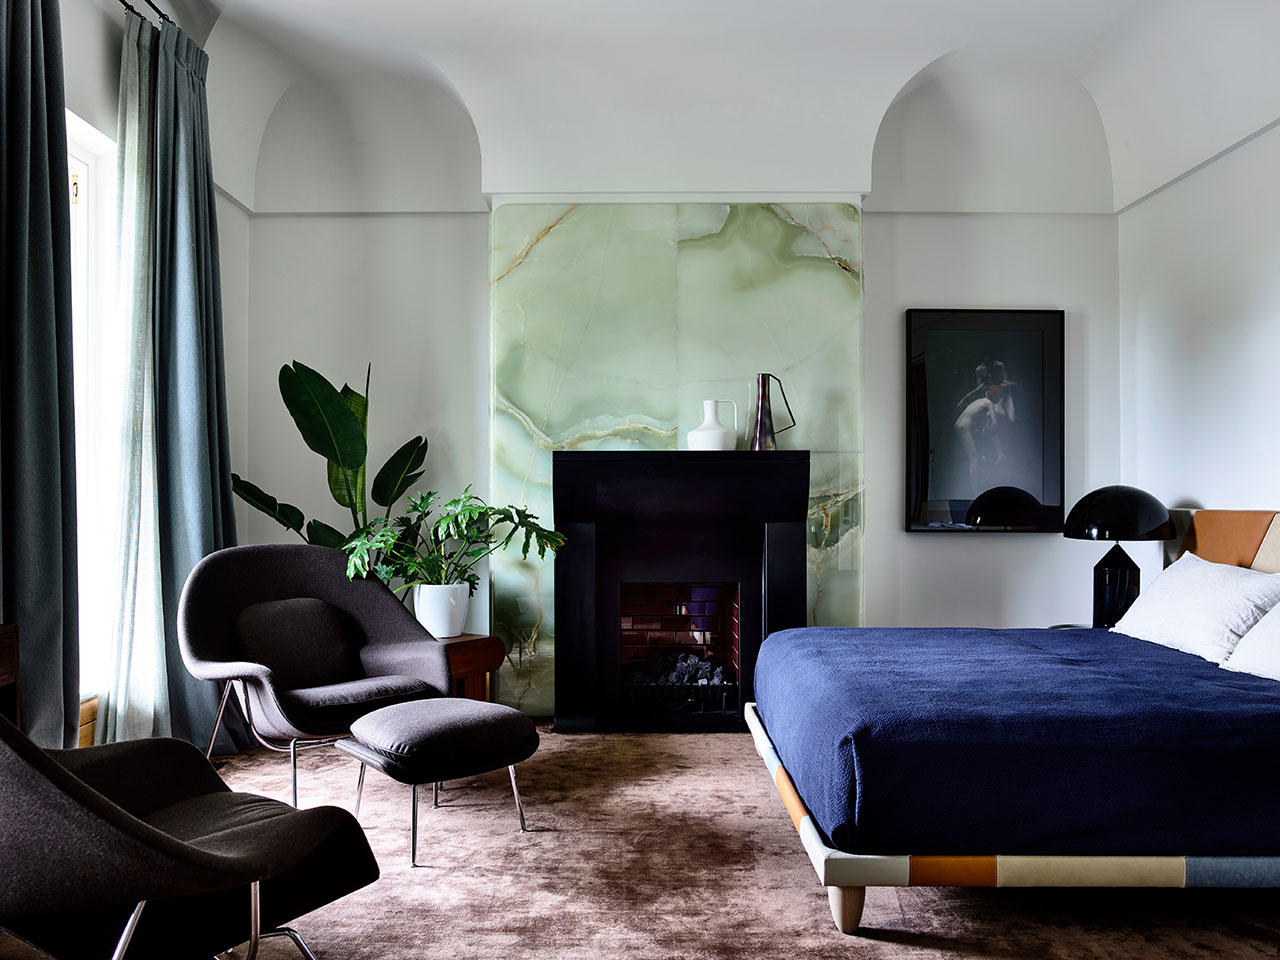 The master bedroom shows off a gorgeous green onyx wall, a built in fireplace and a bold bed